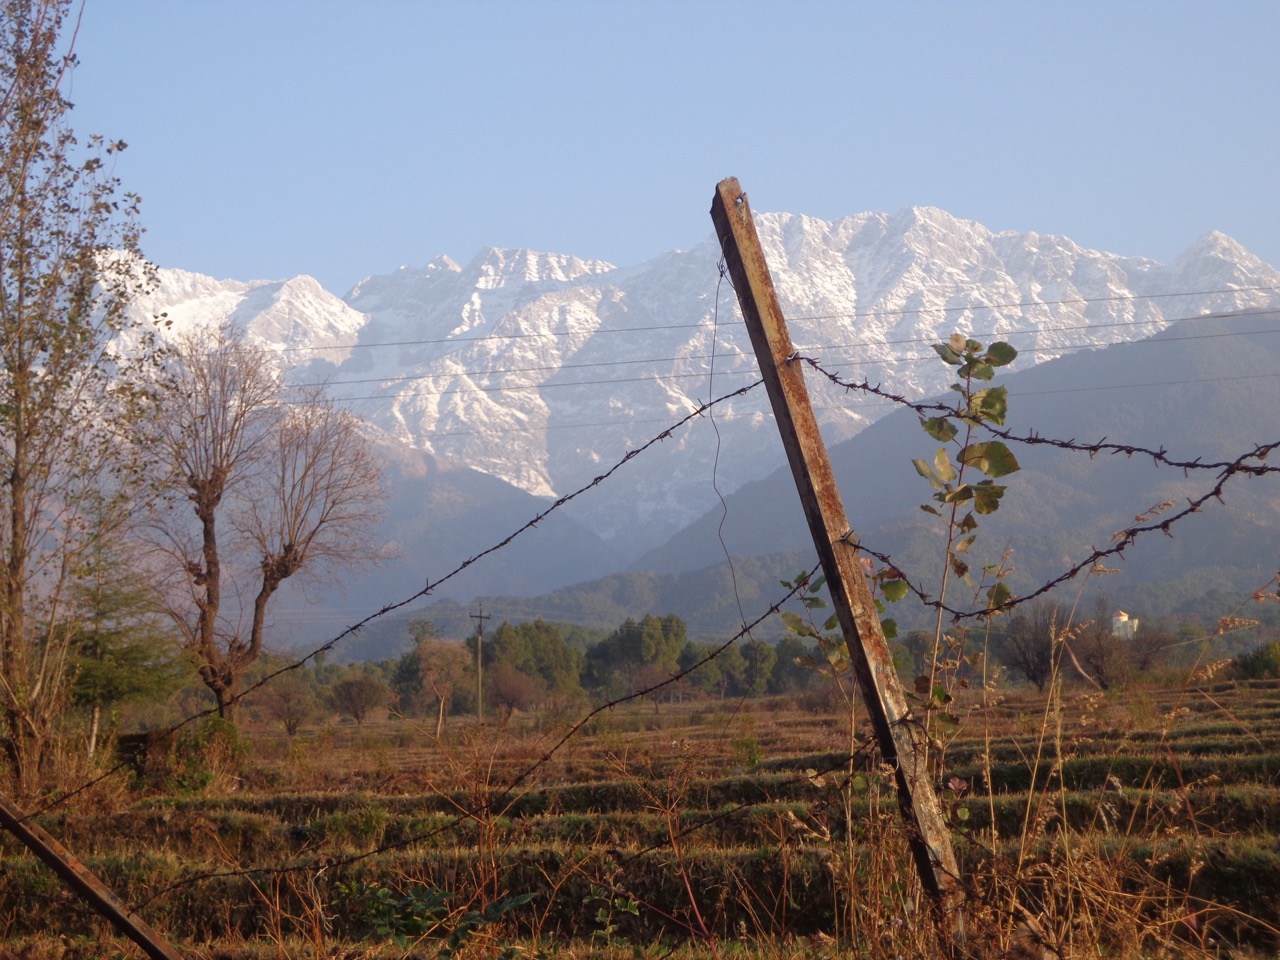 The Dhauladhar range looked brilliant in the clear, morning sky. Yes, I rewrote that sentence for this caption.